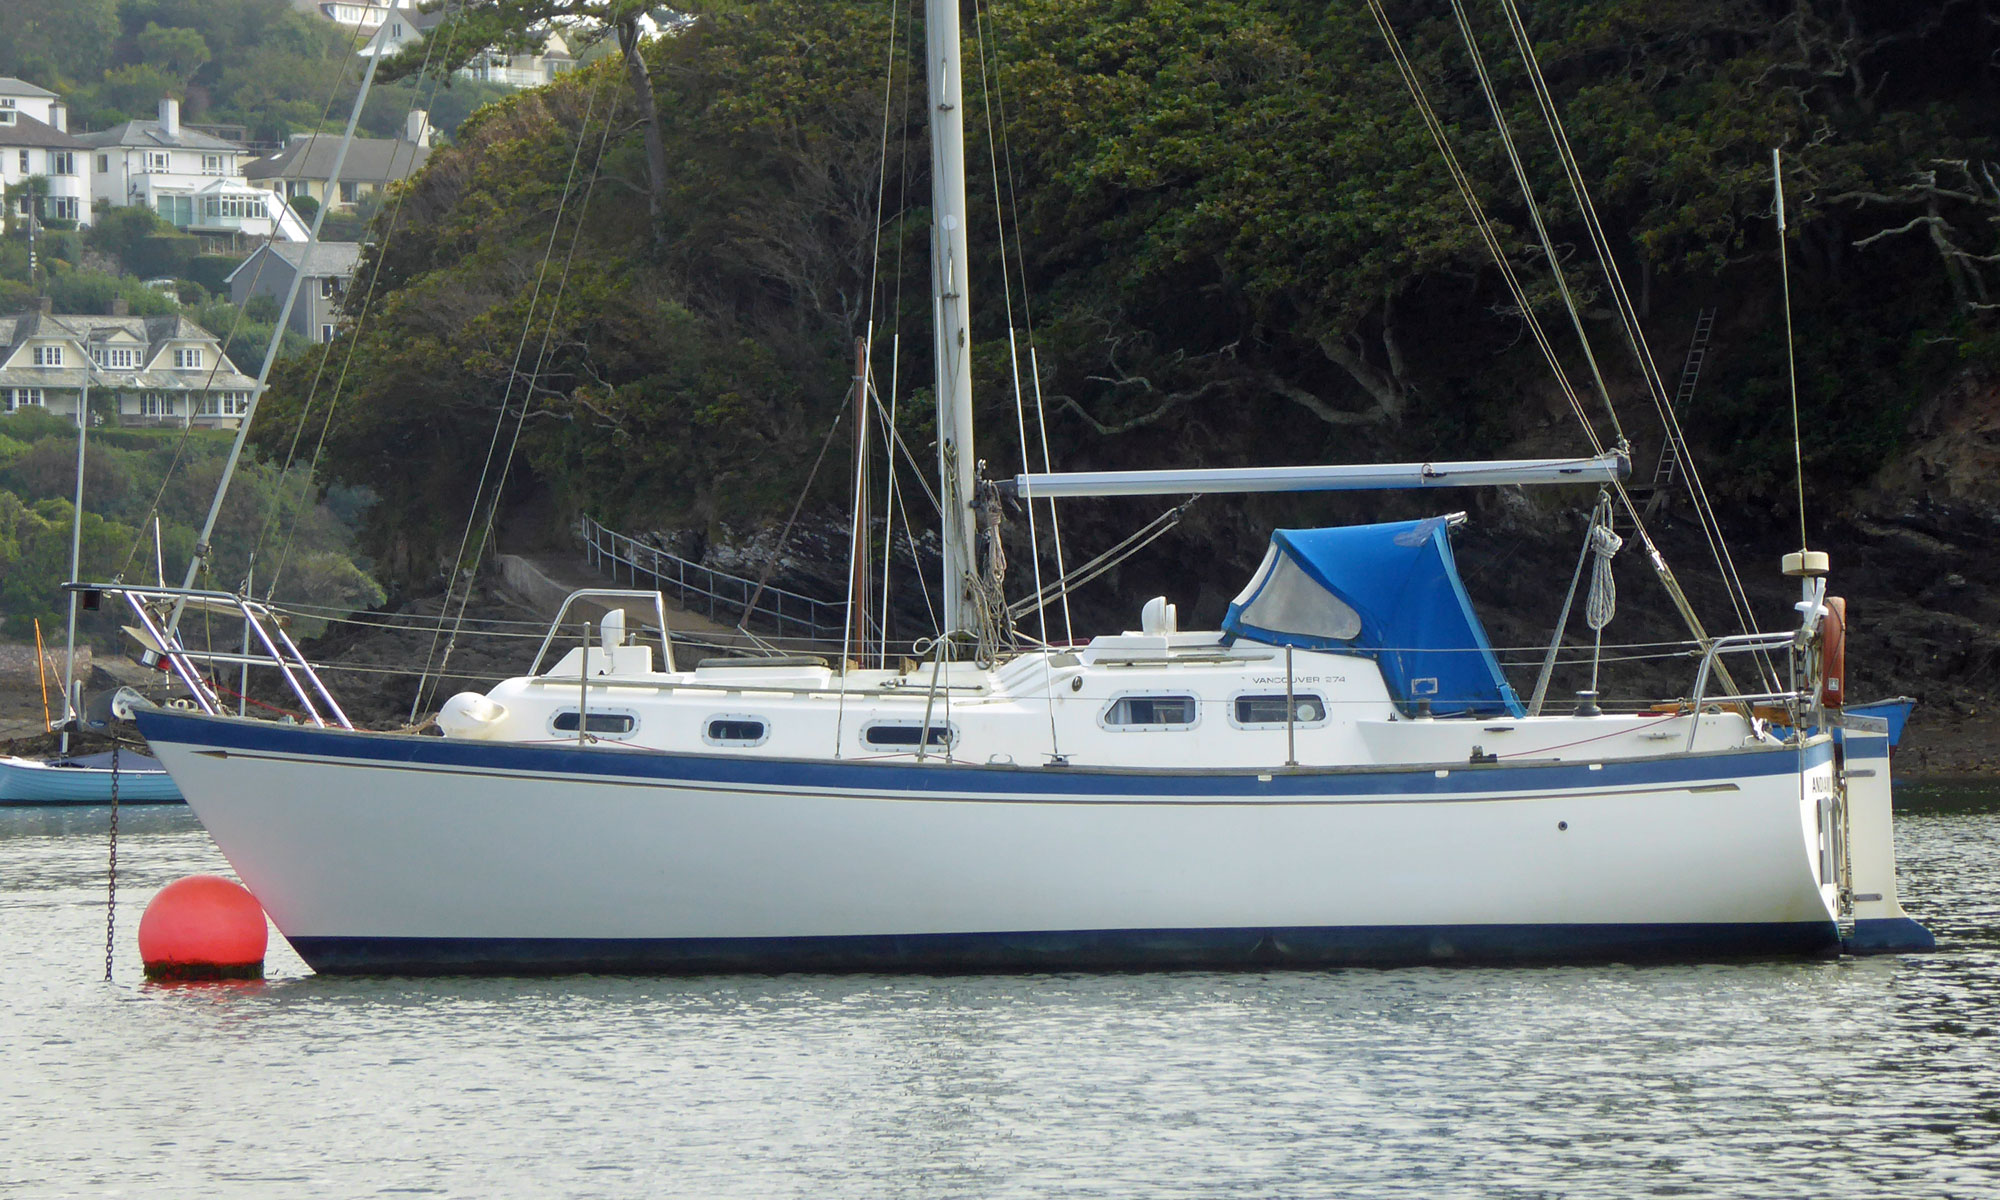 A Vancouver 274 moored on the River Yealm at Newton Ferrers in Devon, UK